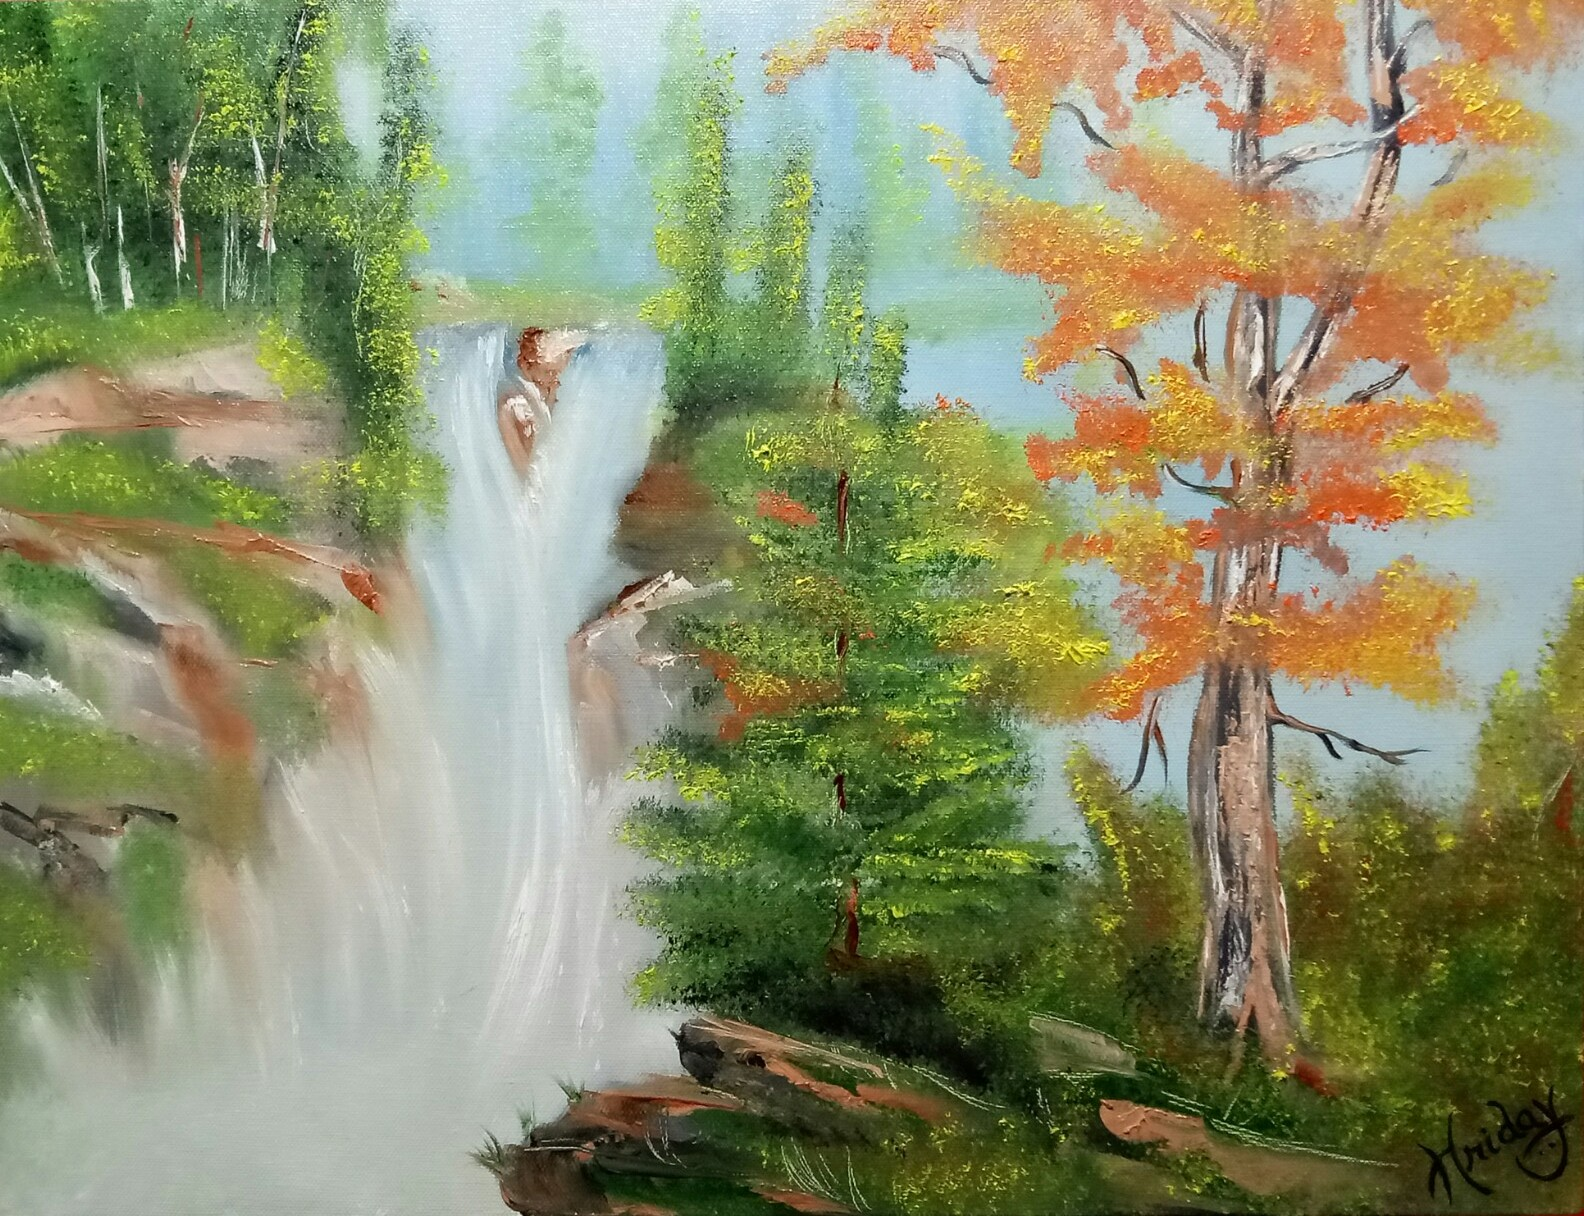 Forest waterfall 10330